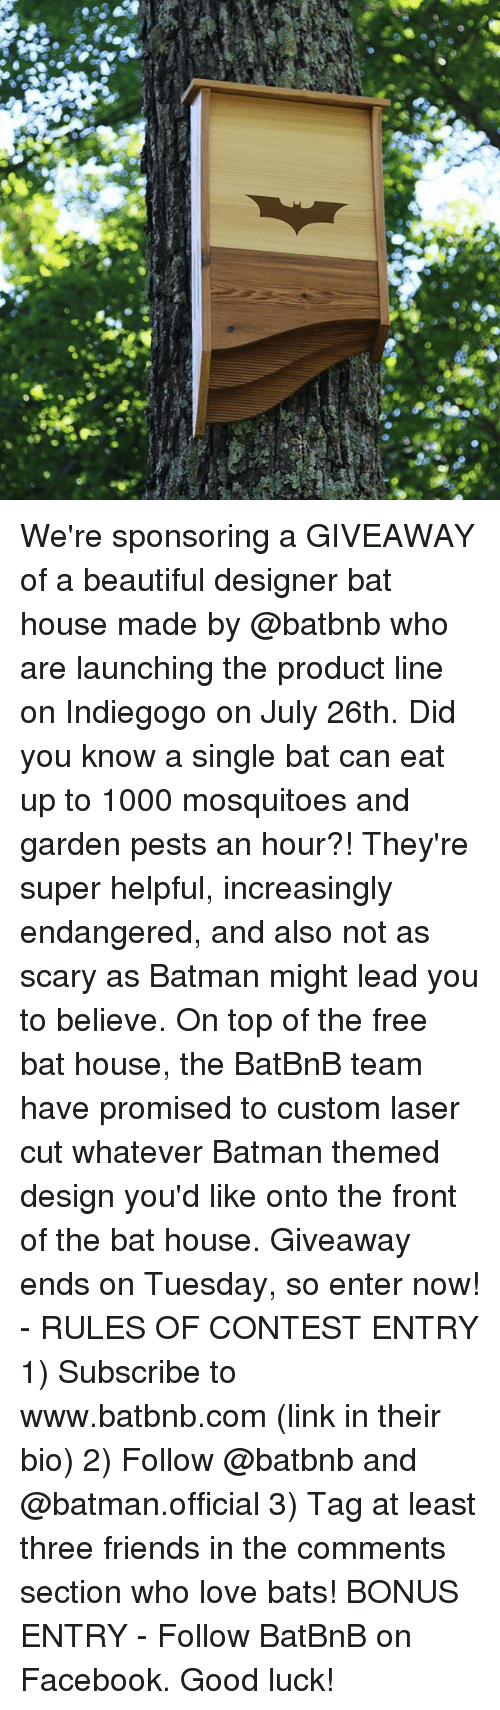 Batman, Beautiful, and Facebook: We're sponsoring a GIVEAWAY of a beautiful designer bat house made by @batbnb who are launching the product line on Indiegogo on July 26th. Did you know a single bat can eat up to 1000 mosquitoes and garden pests an hour?! They're super helpful, increasingly endangered, and also not as scary as Batman might lead you to believe. On top of the free bat house, the BatBnB team have promised to custom laser cut whatever Batman themed design you'd like onto the front of the bat house. Giveaway ends on Tuesday, so enter now! - RULES OF CONTEST ENTRY 1) Subscribe to www.batbnb.com (link in their bio) 2) Follow @batbnb and @batman.official 3) Tag at least three friends in the comments section who love bats! BONUS ENTRY - Follow BatBnB on Facebook. Good luck!